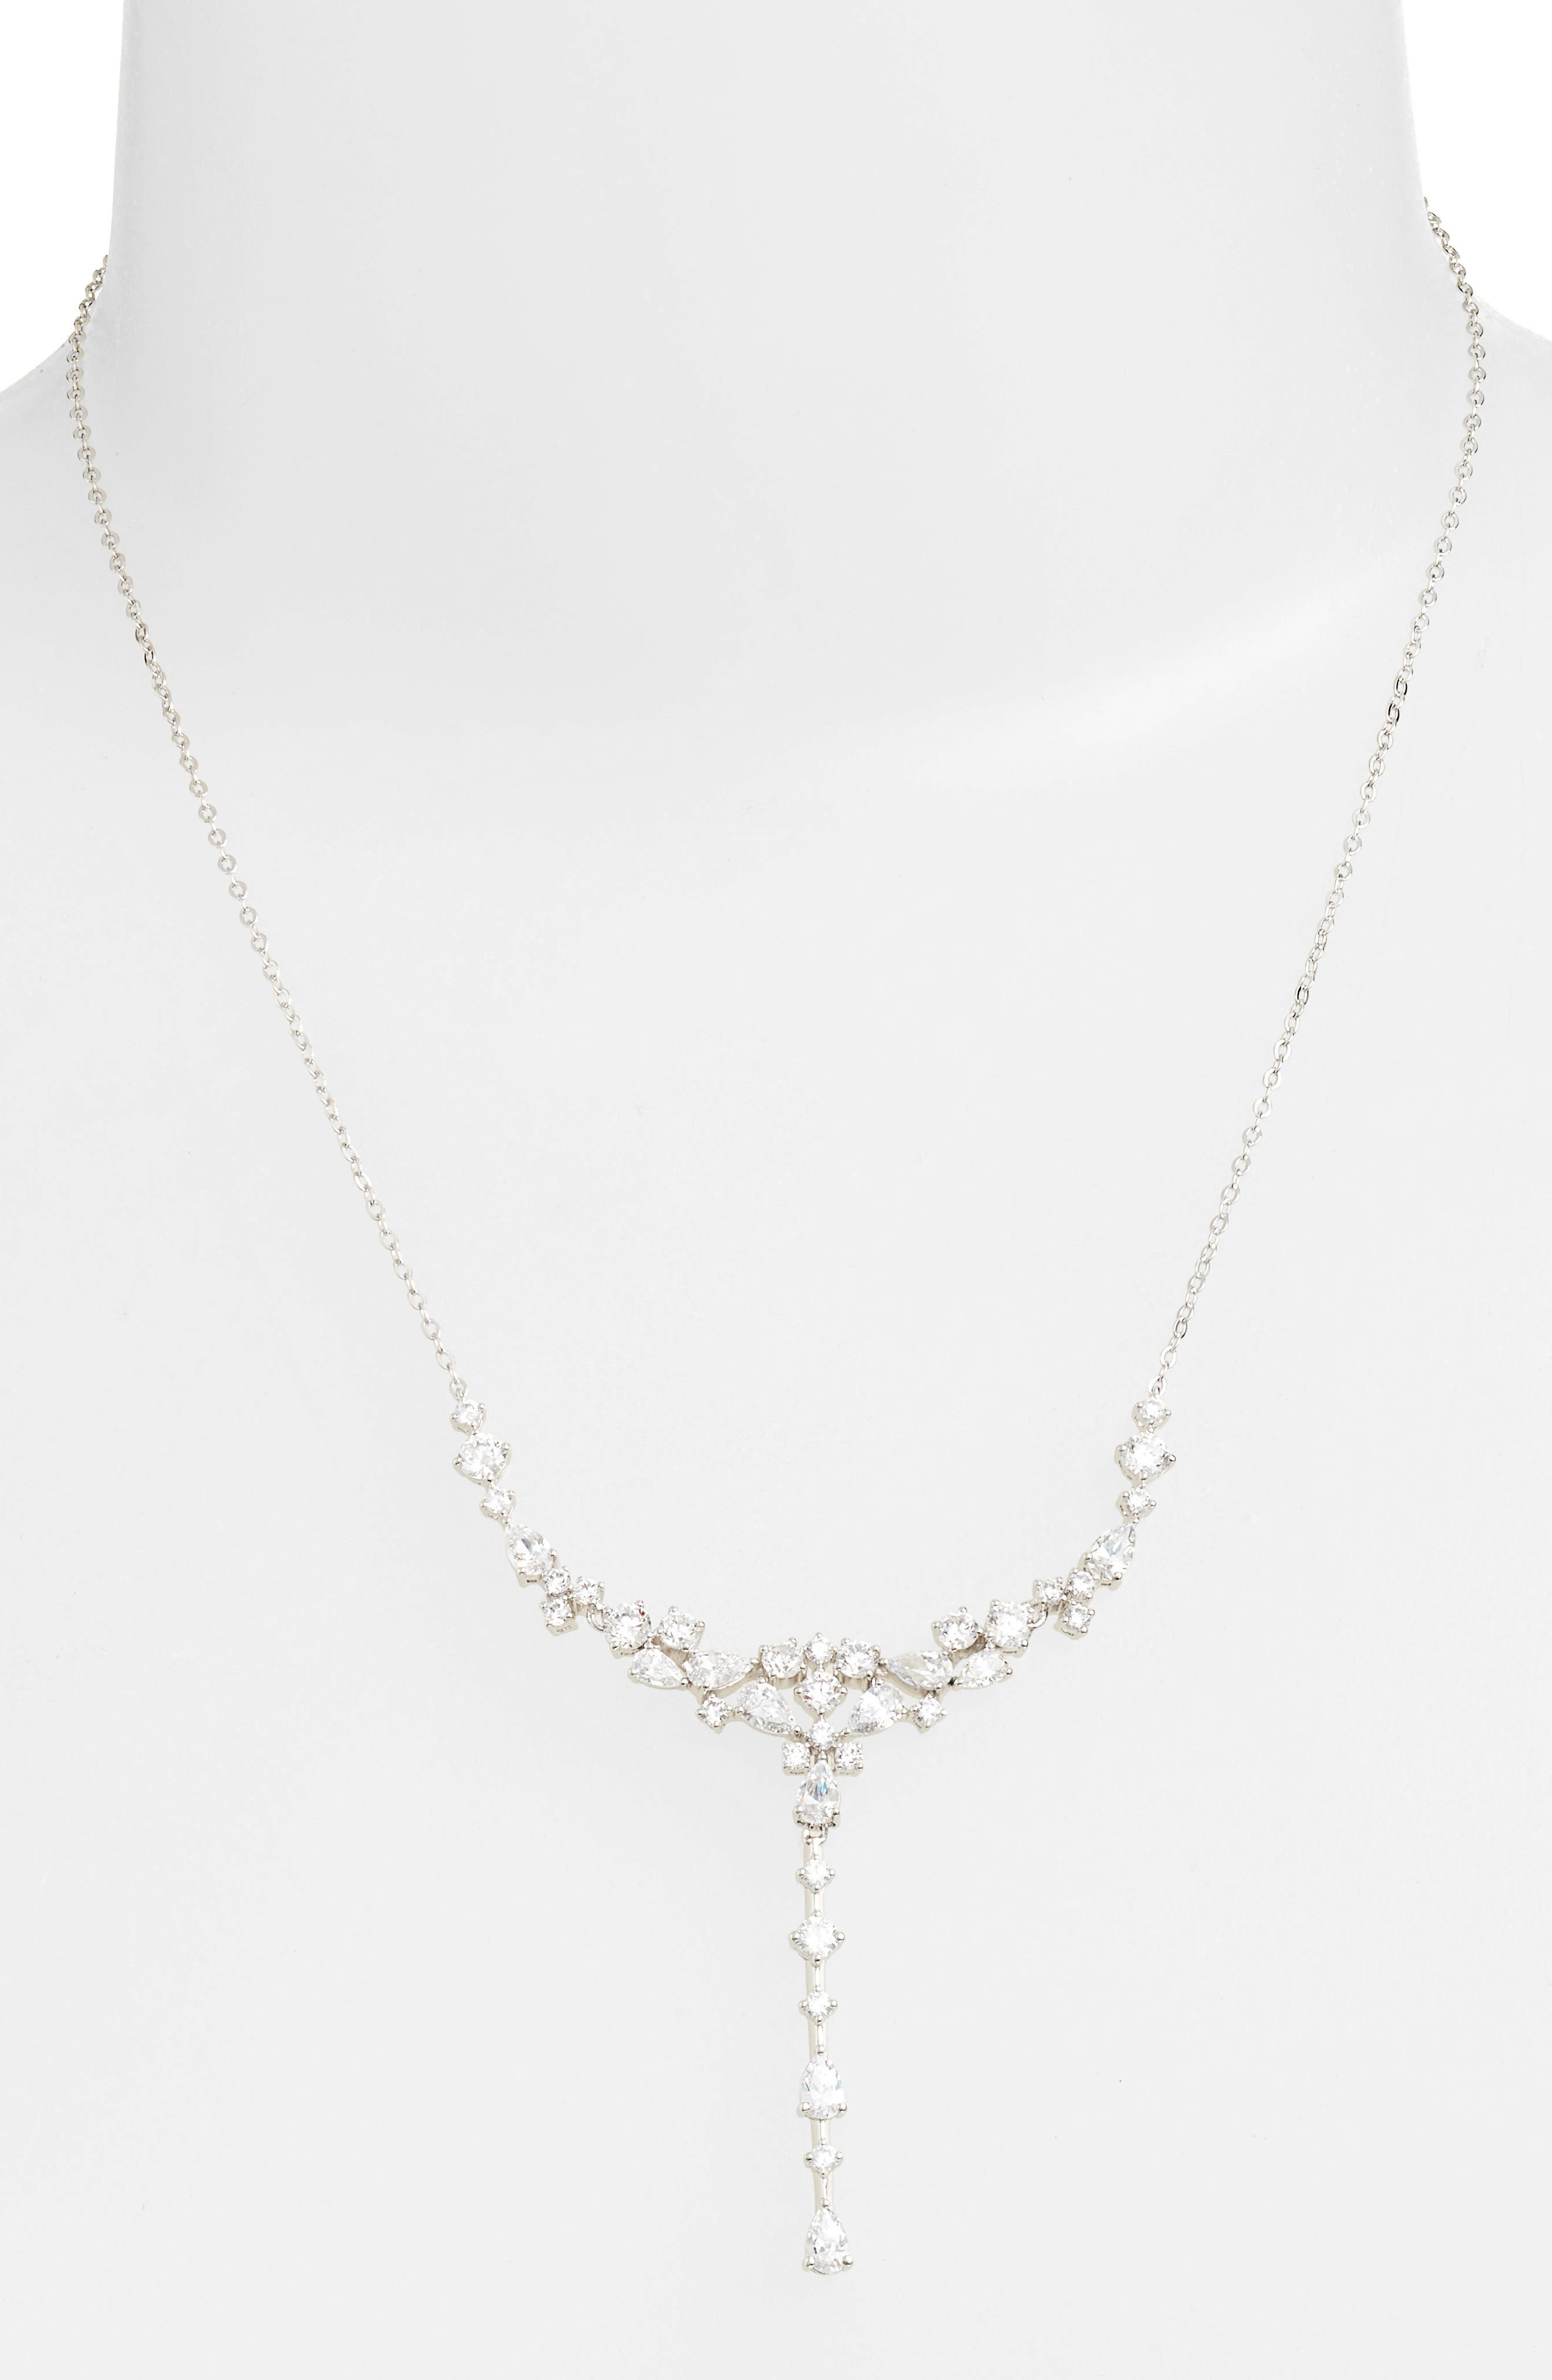 Cubic Zirconia Necklace,                             Alternate thumbnail 2, color,                             SILVER